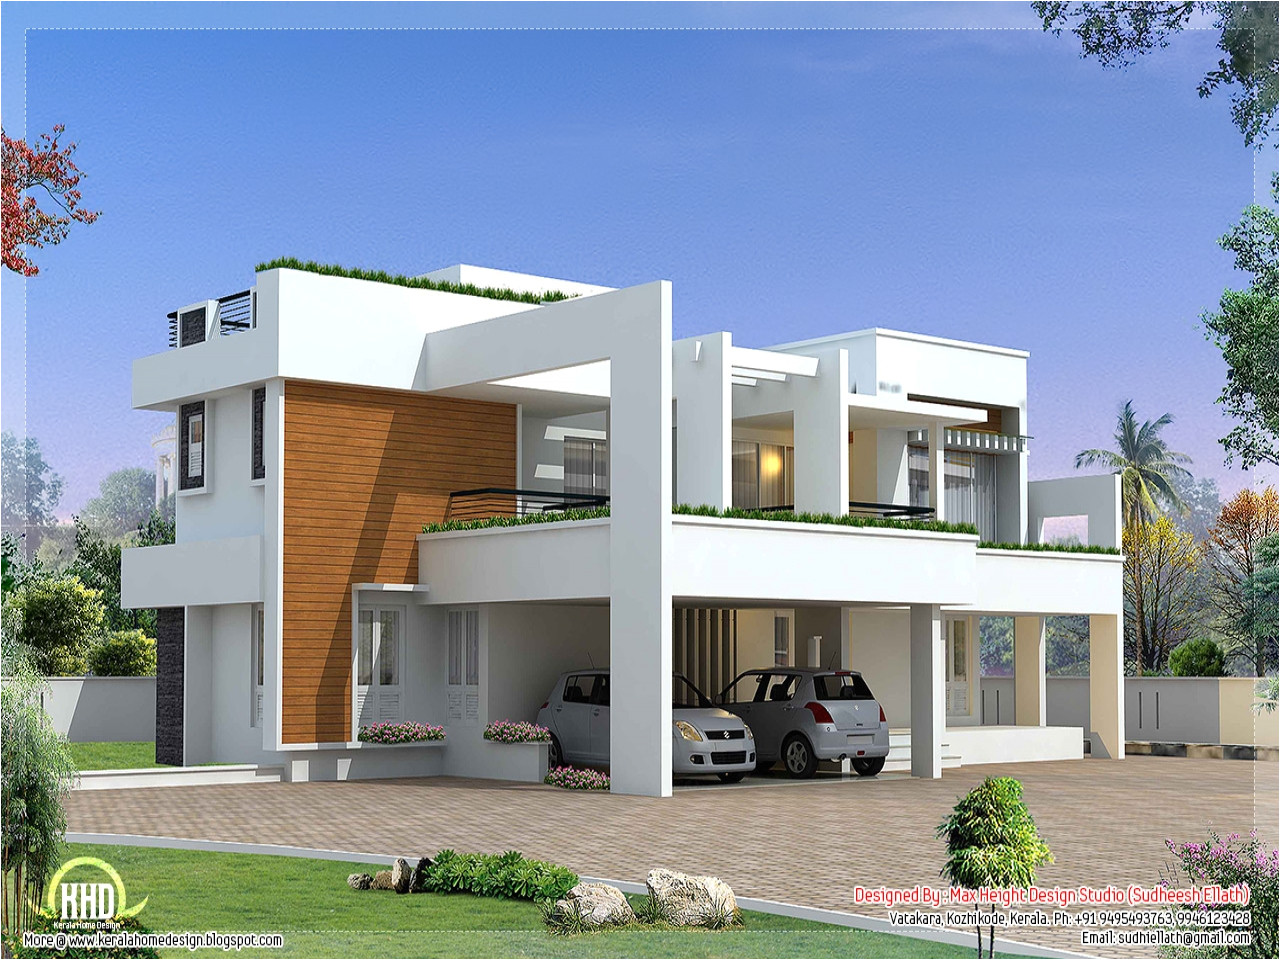 54ab89e298df6ad4 contemporary house plans flat roof modern contemporary house plans designs